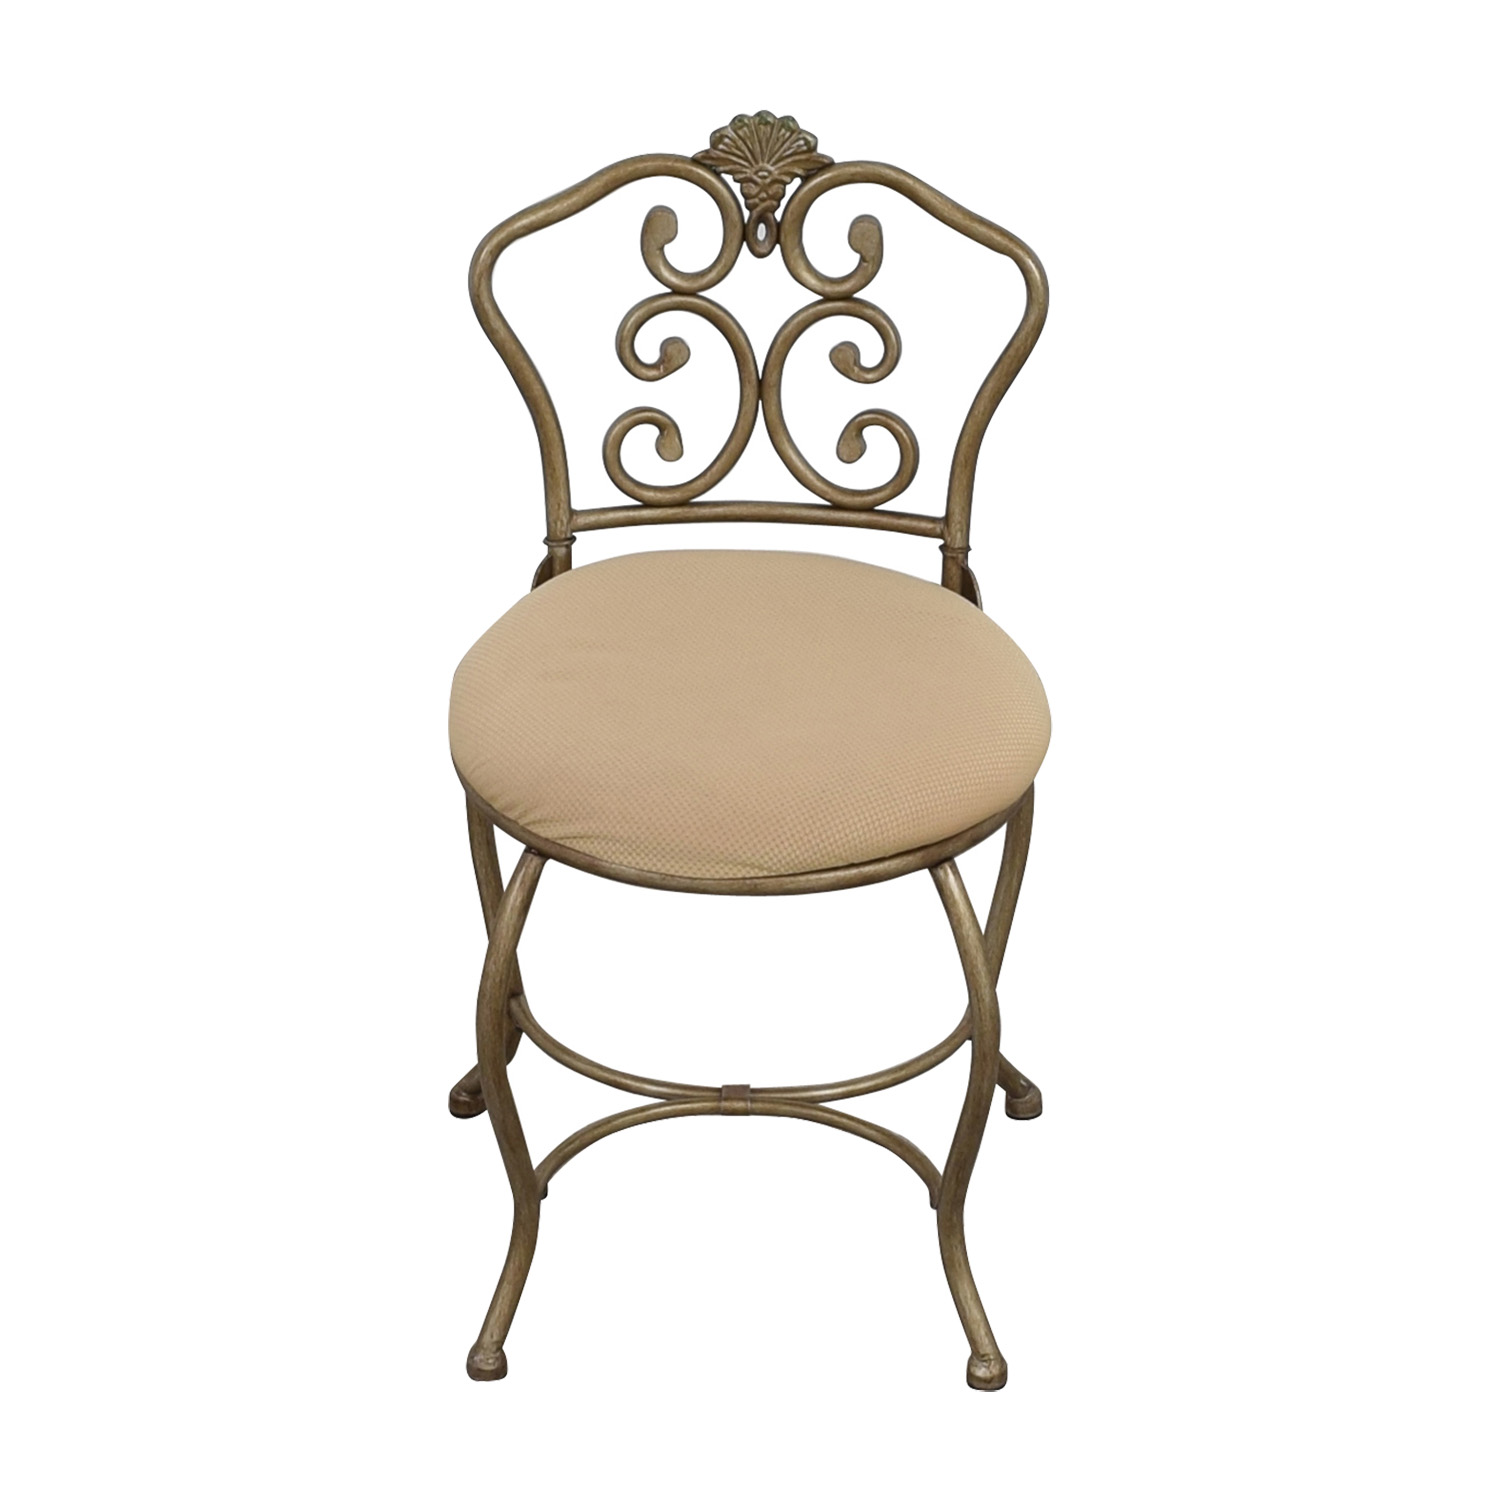 buy Tan Seat with Silver Frame Chair